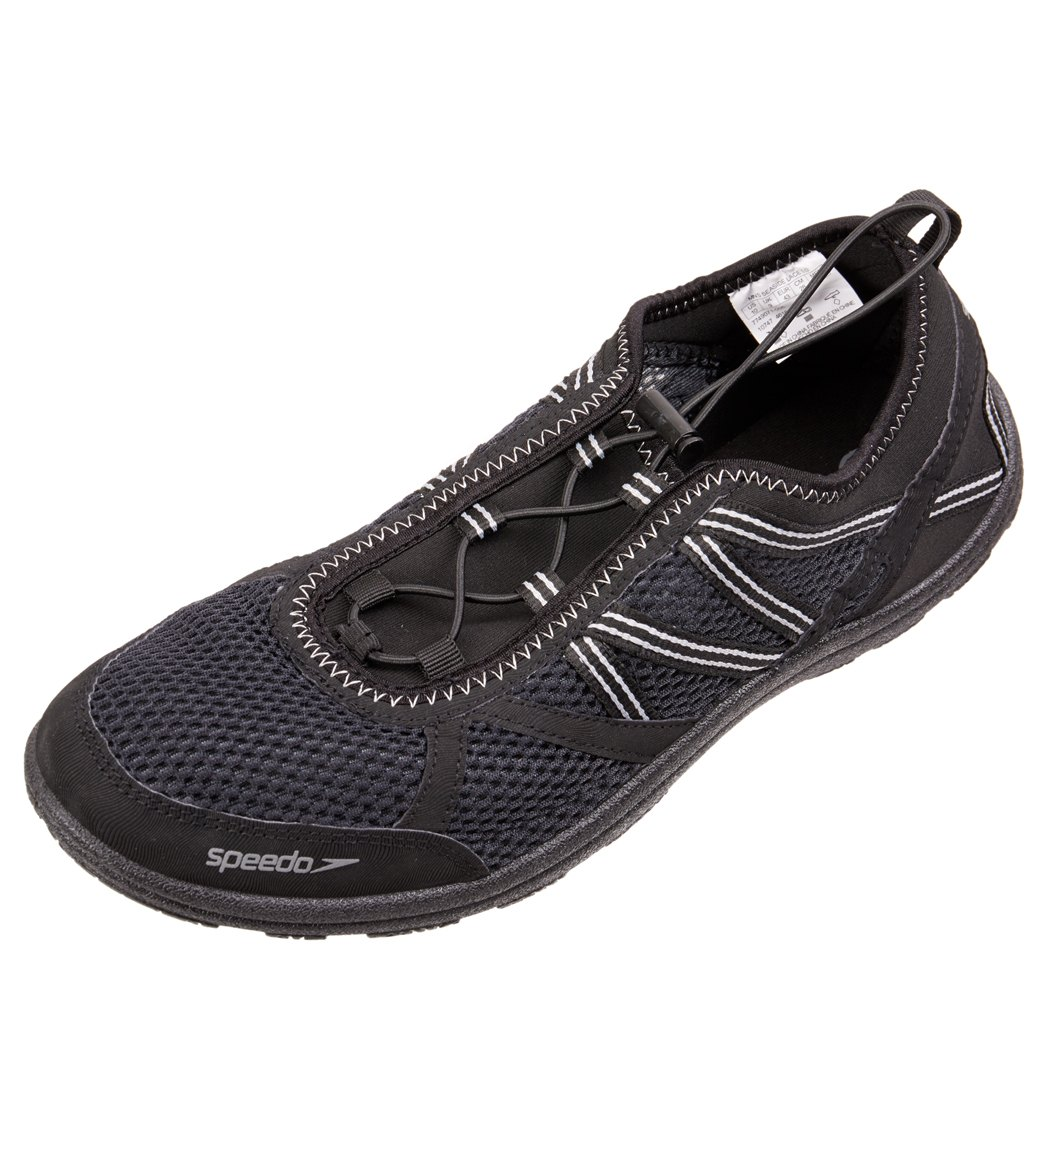 65da0c31ca4 Speedo Men's Seaside Lace 5.0 Water Shoe